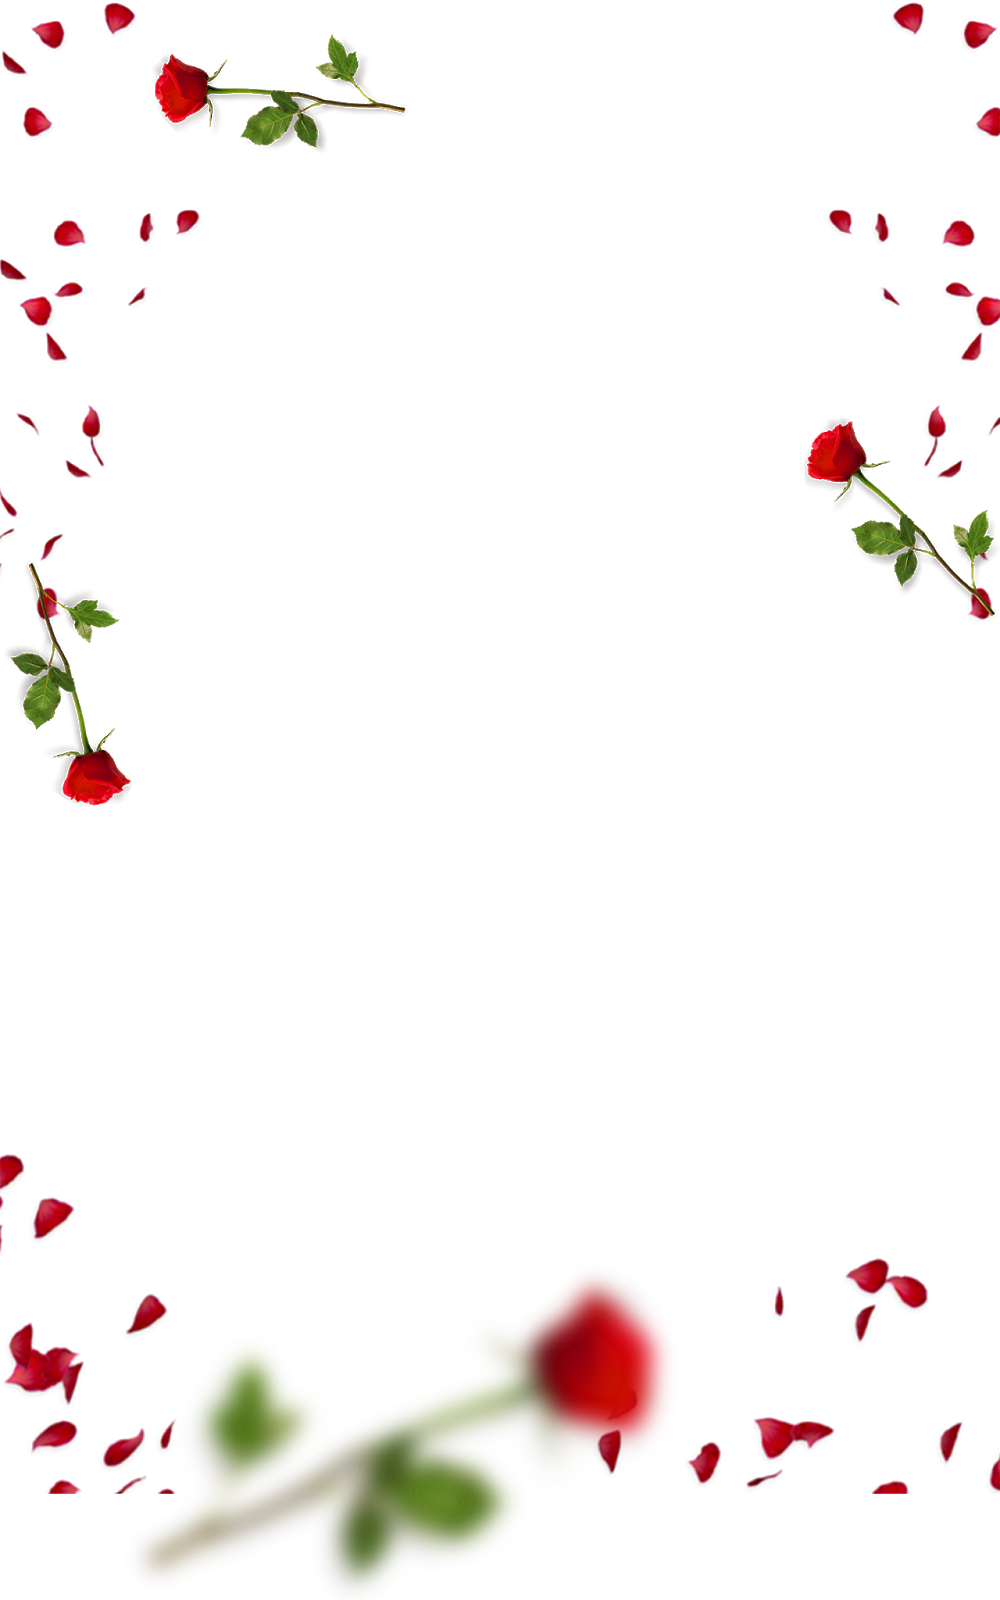 Valentine Day Photo Editing Background Png Download For Picsart Photoshop Hd Wedding Background Images Flower Background Images Blue Background Images